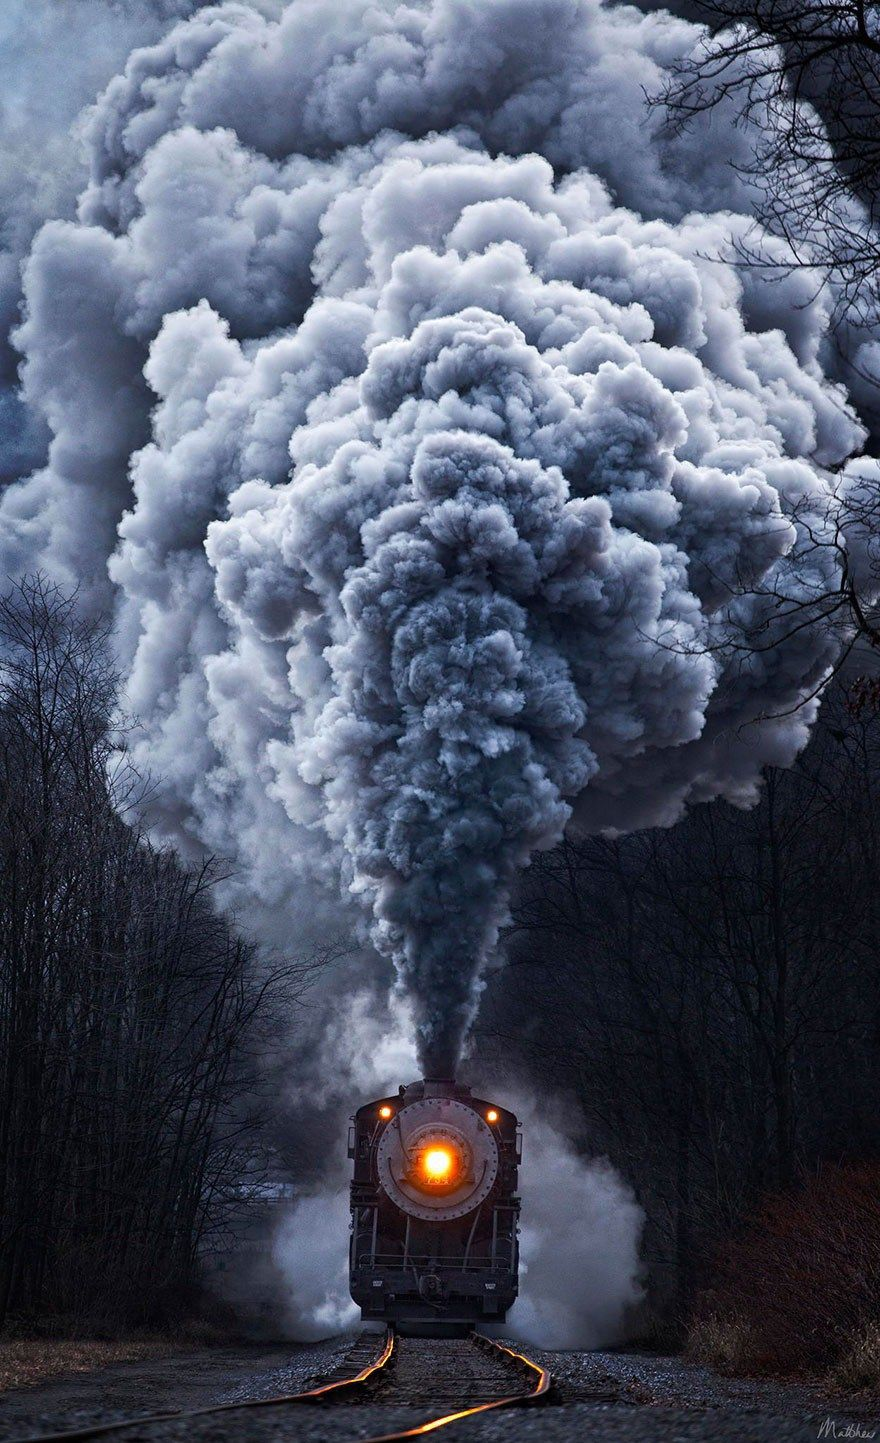 Train wallpaper for AndroidIphone Mobile Wallpaper Pinterest